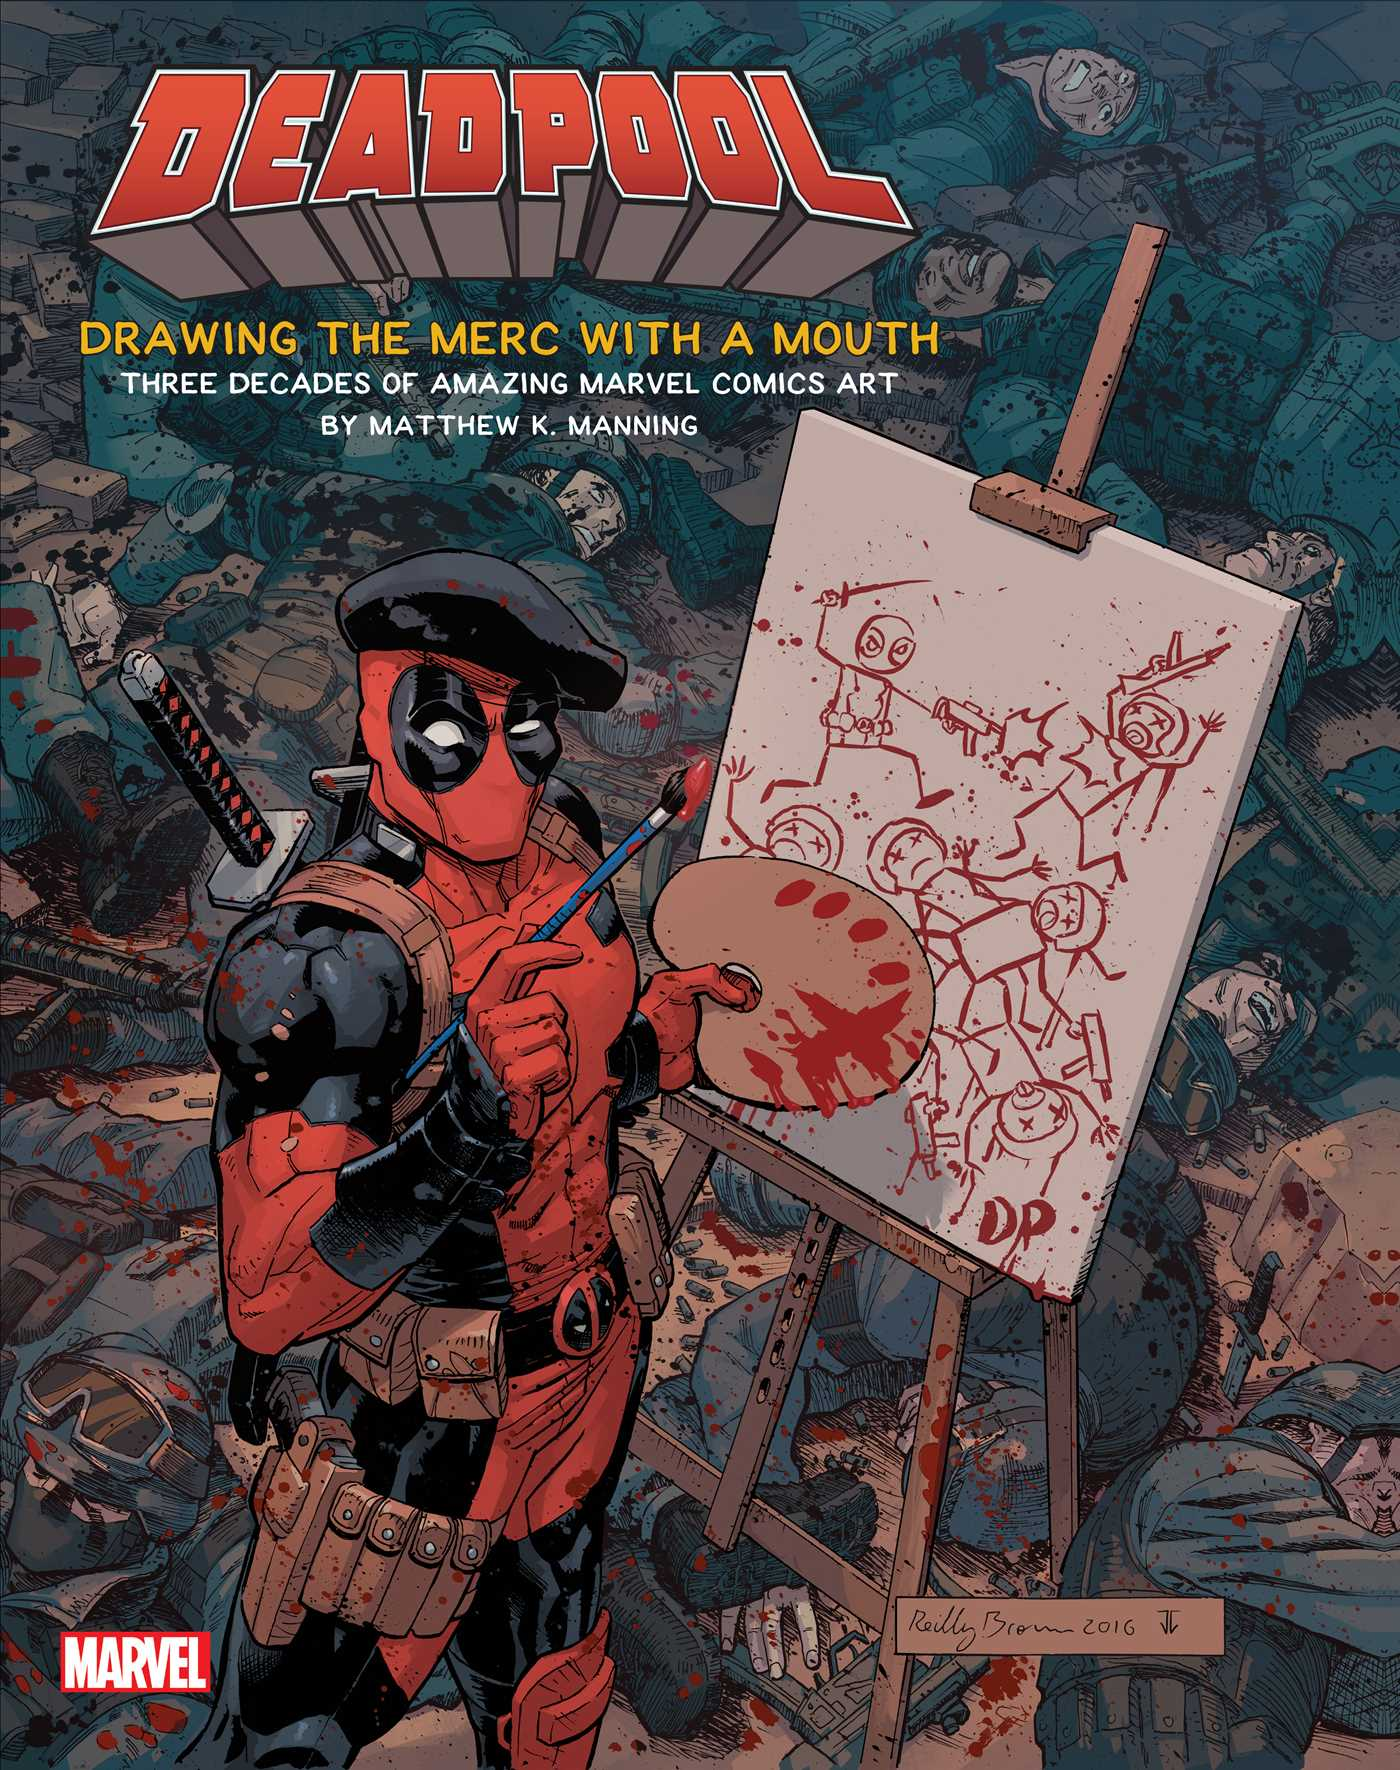 De deadpool drawing pages - Deadpool Drawing The Merc With A Mouth 9781608879182 Hr